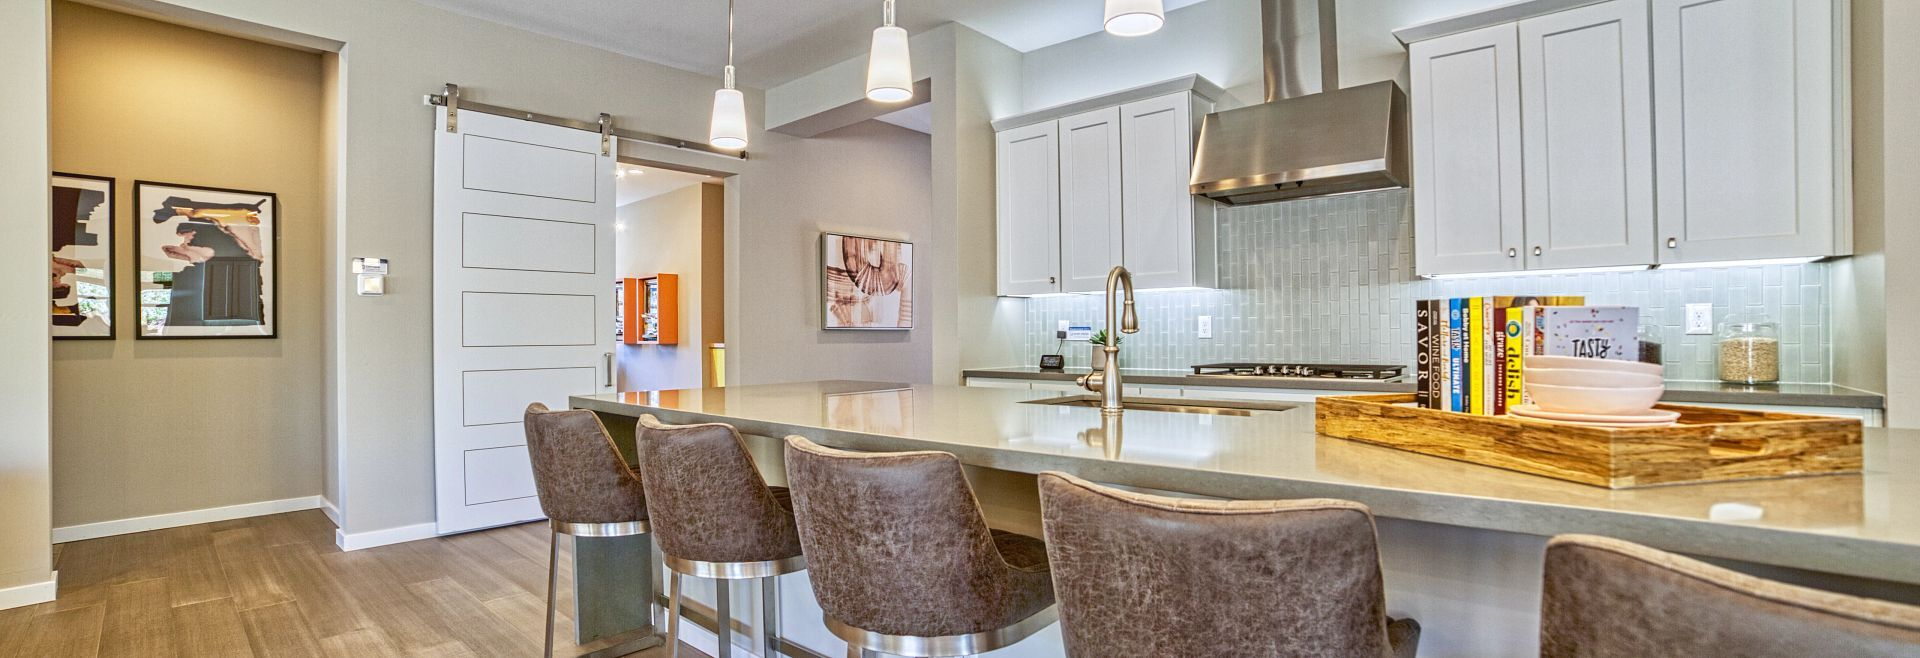 Kitchen featured in the Plan 5014 By Shea Homes in Phoenix-Mesa, AZ